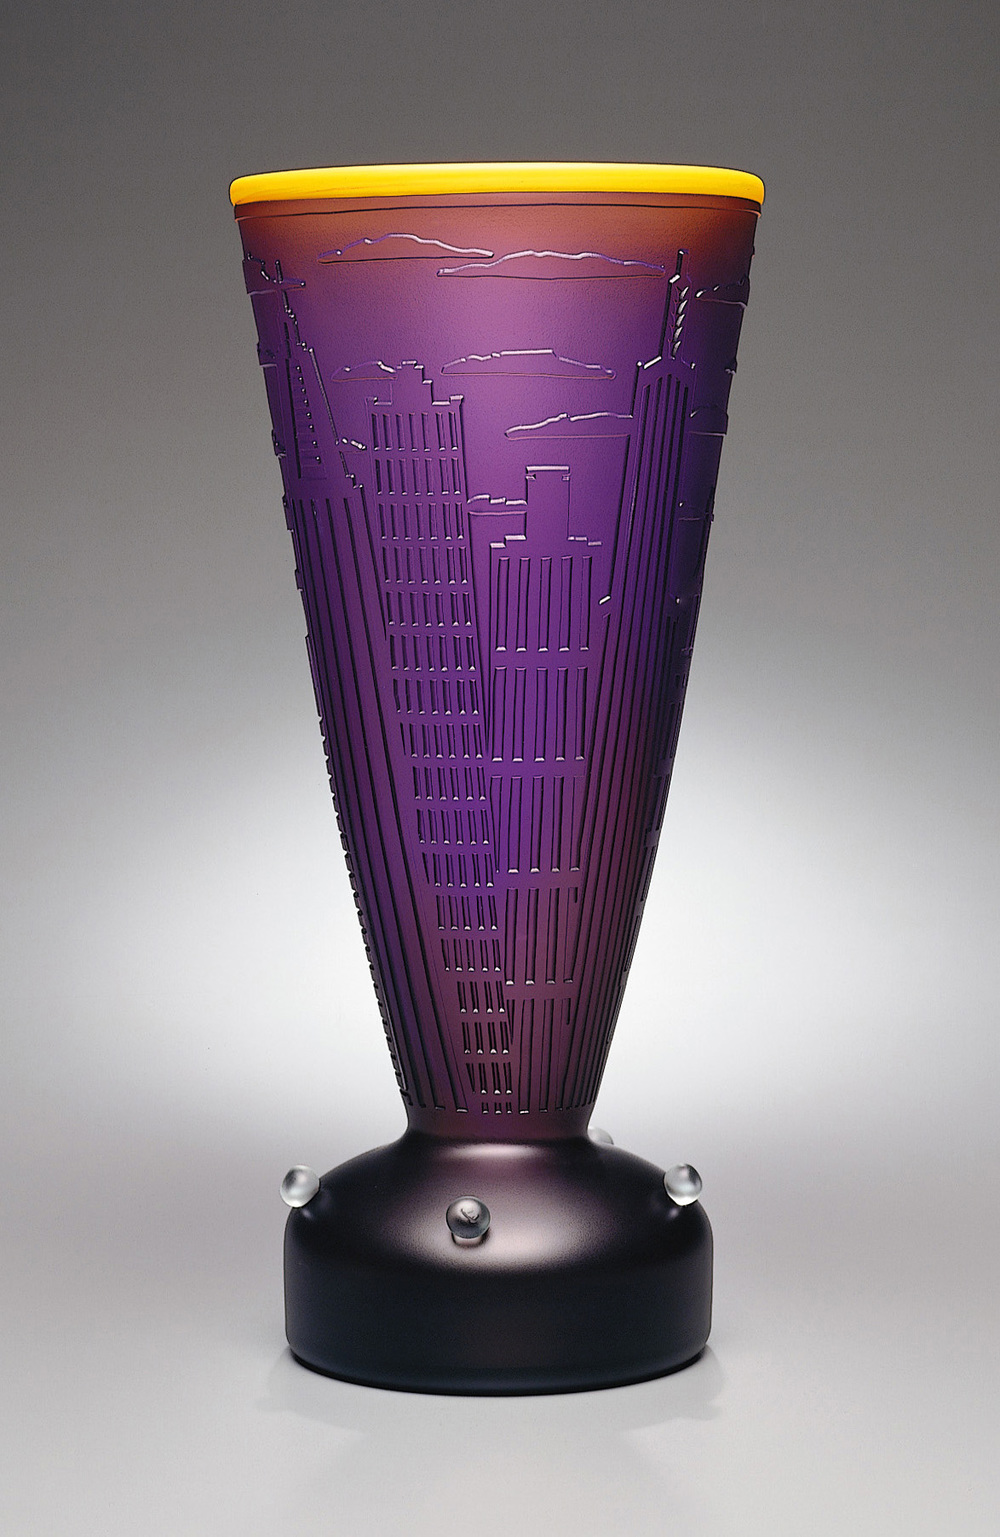 New York 8 1994. Blown glass, sandblasted and acid polished. 21½ x 10 x 10""